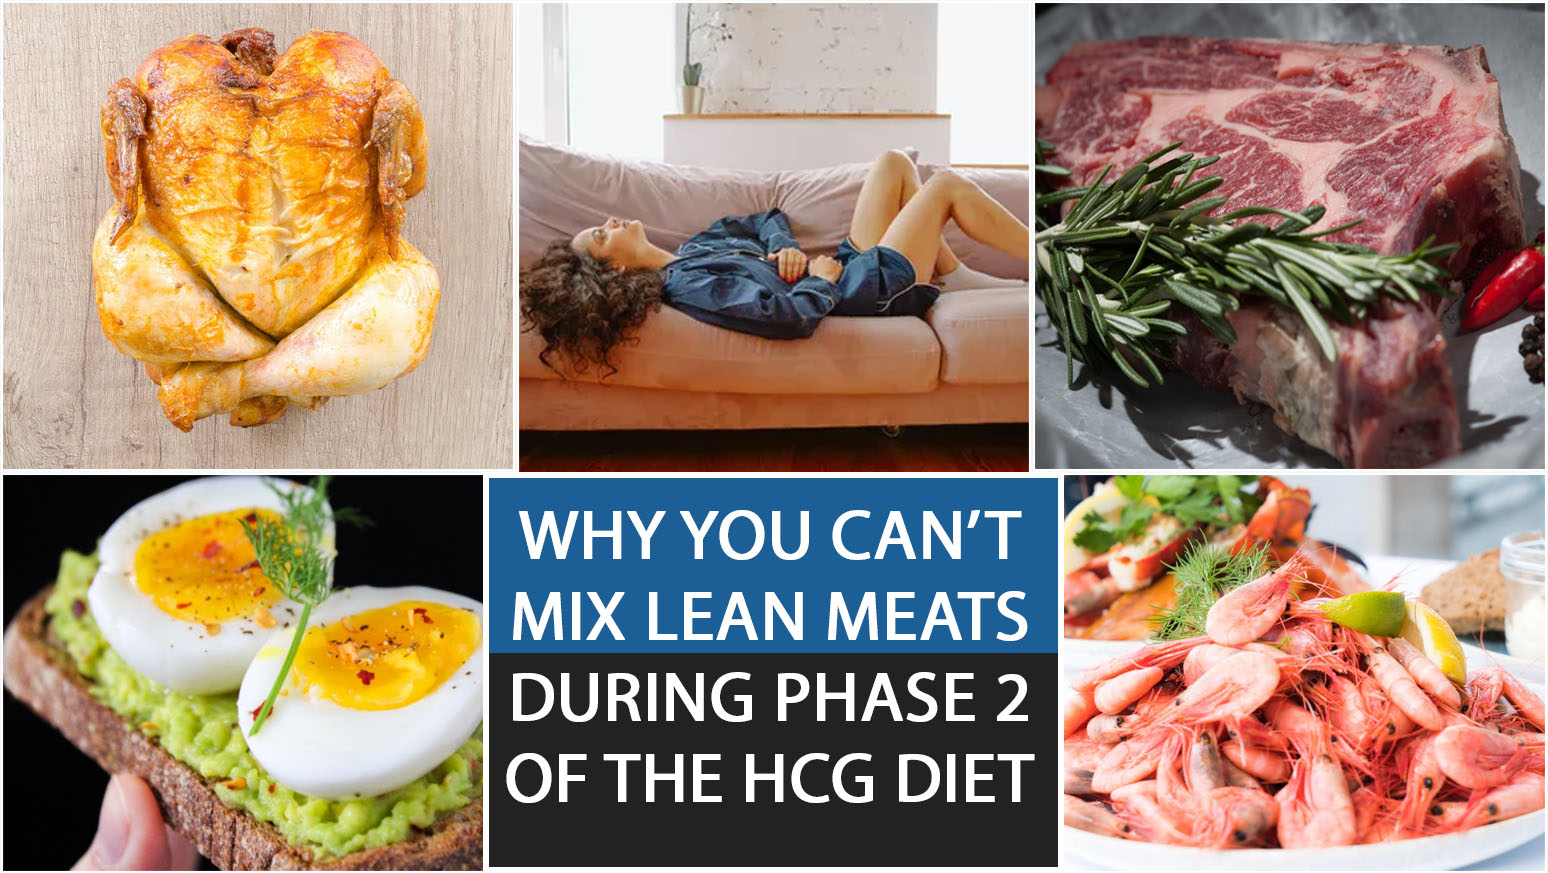 WHY YOU CAN'T MIX LEAN MEATS DURING PHASE 2 OF THE HCG DIET?